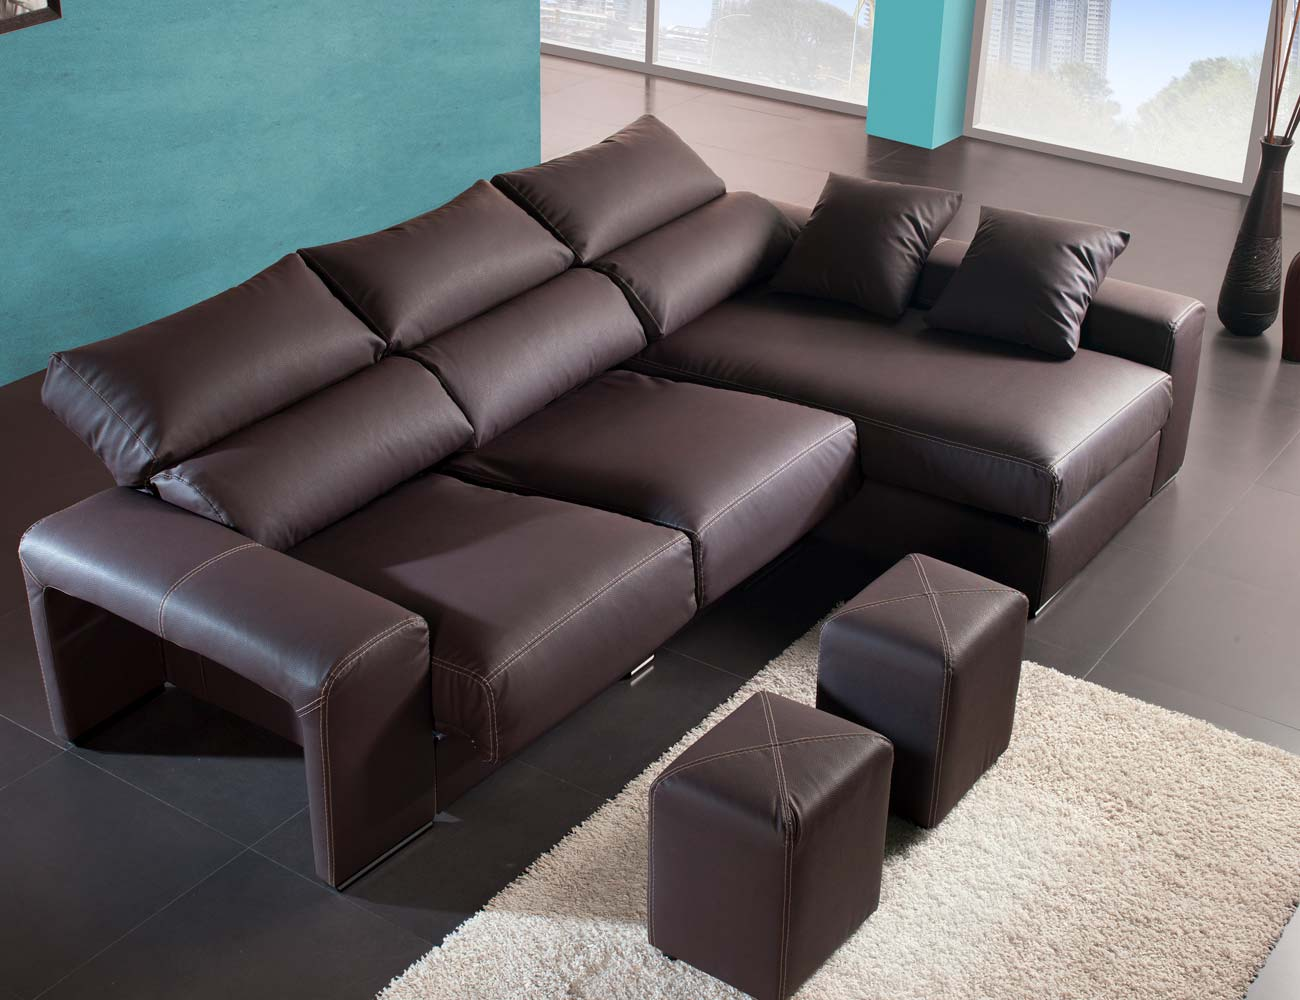 Sofa chaiselongue moderno polipiel chocolate poufs taburetes65